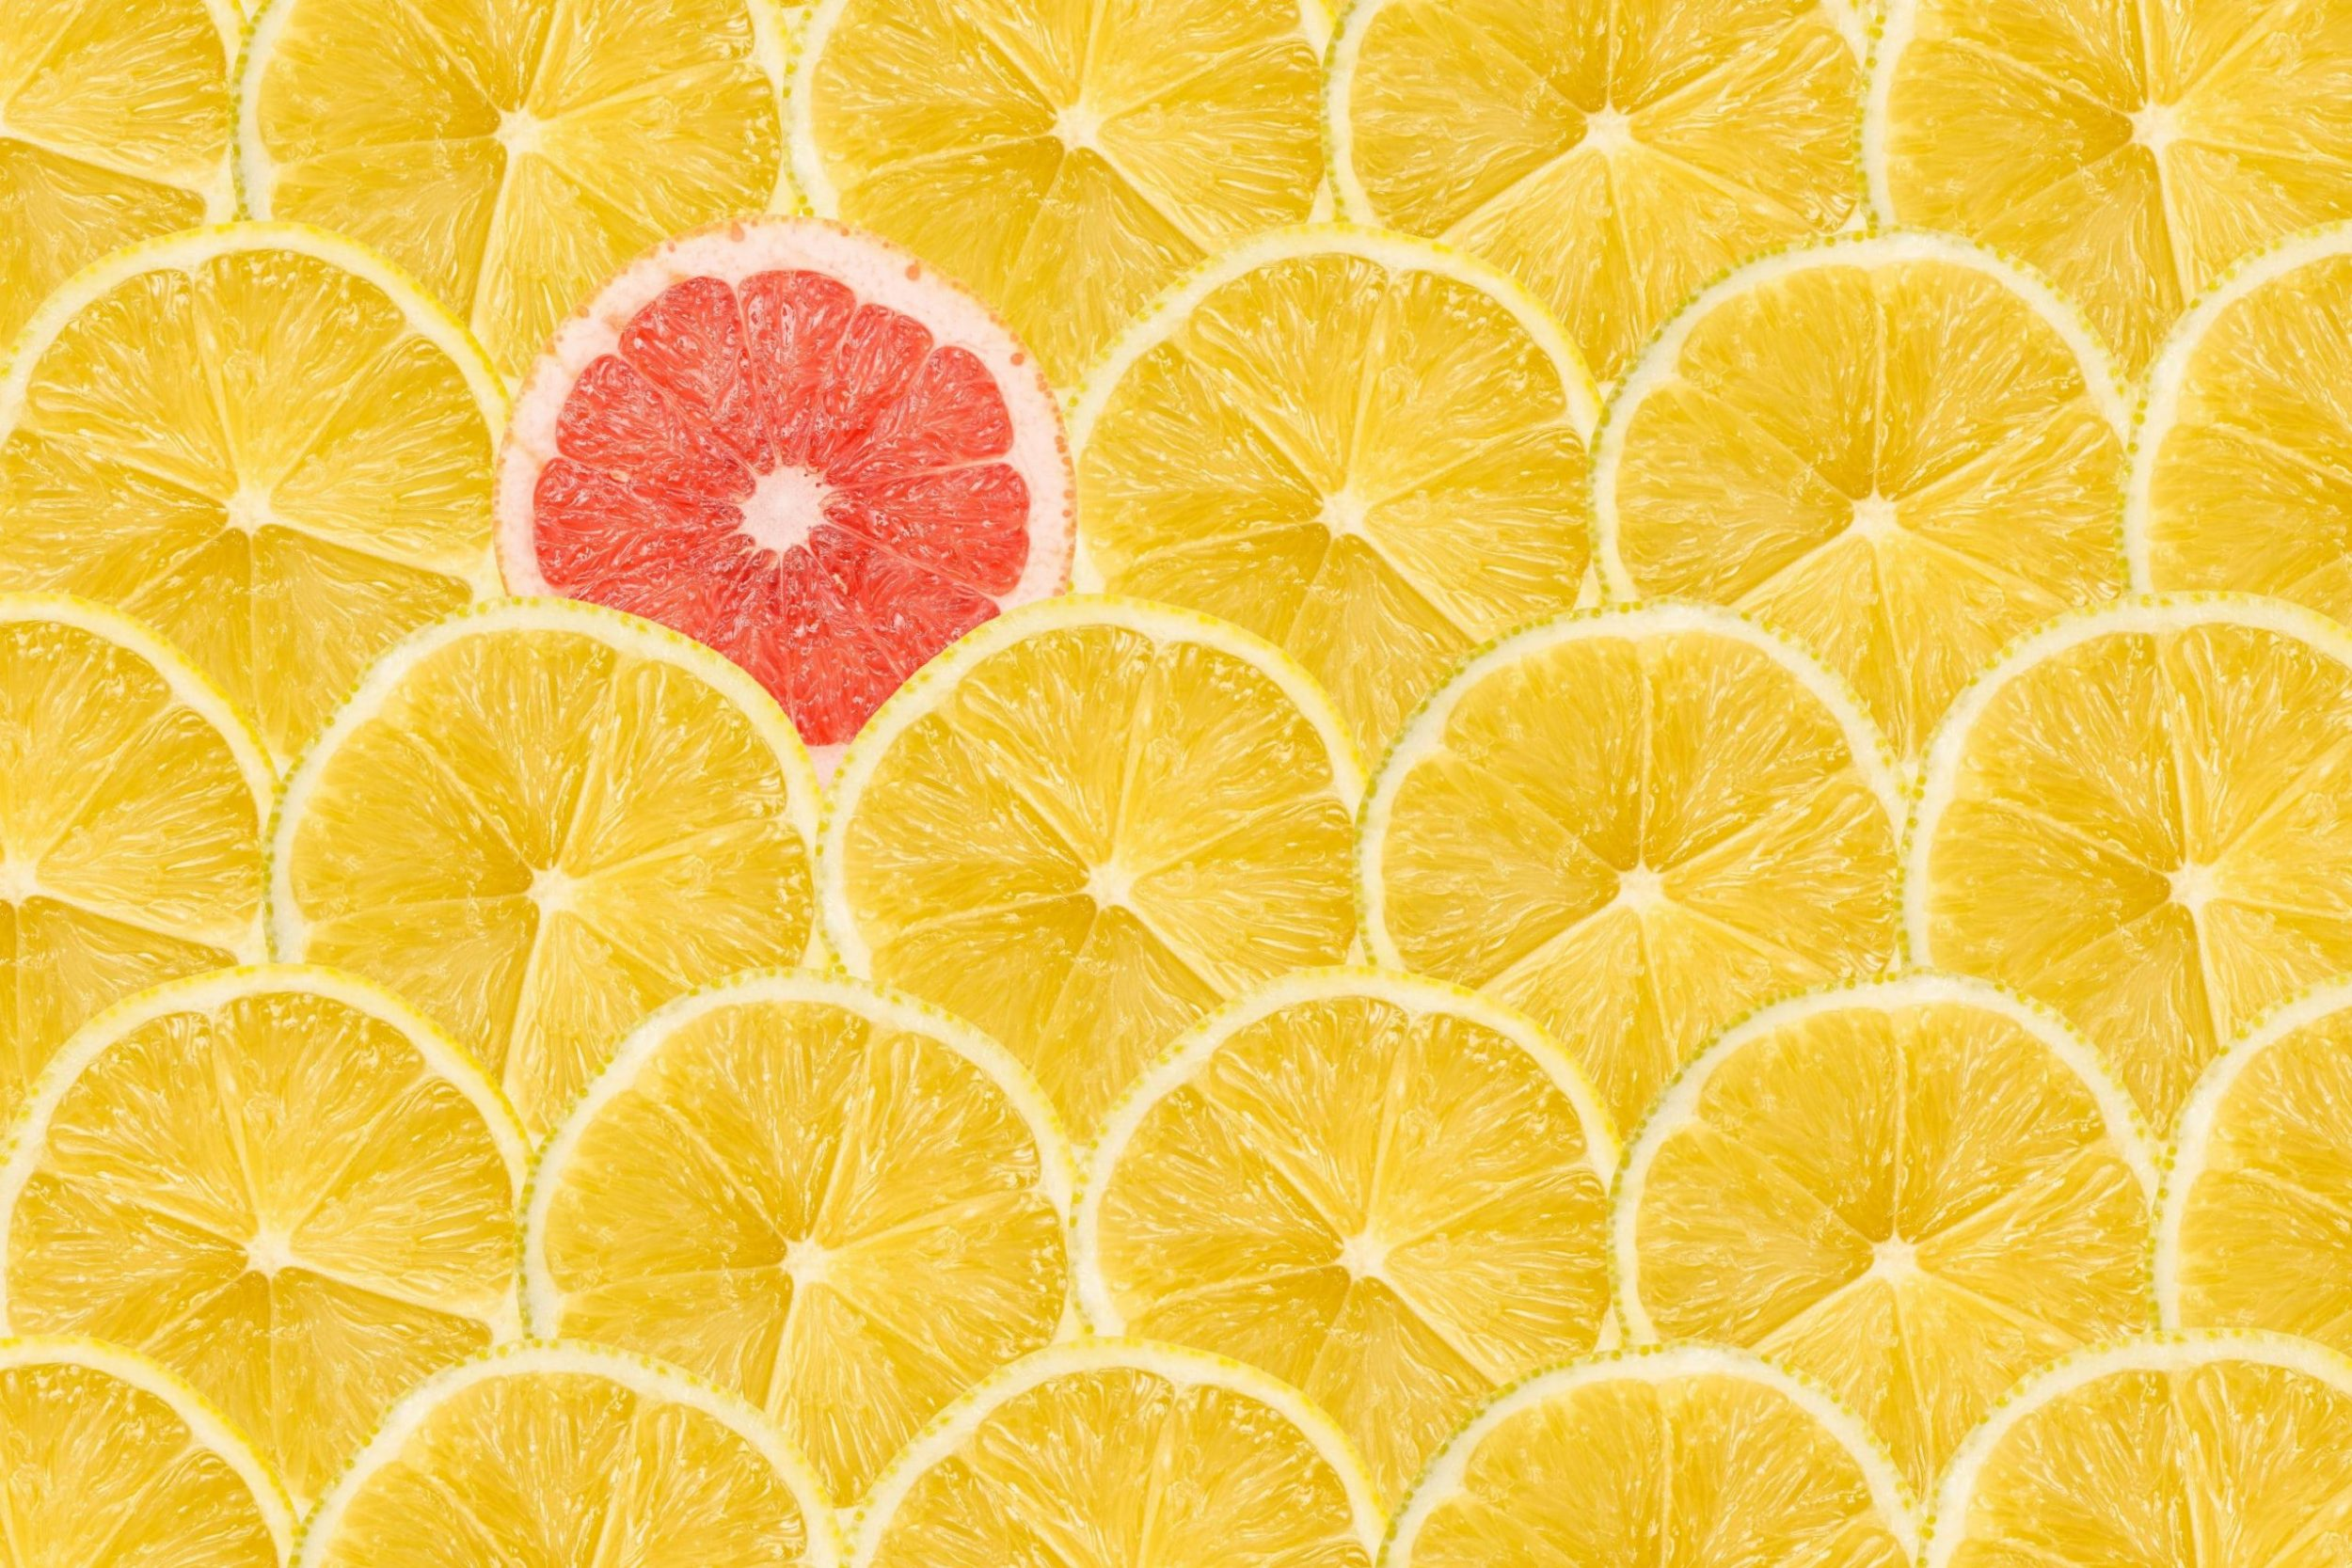 Pink grapefruit stands out from the crowd of lemons.